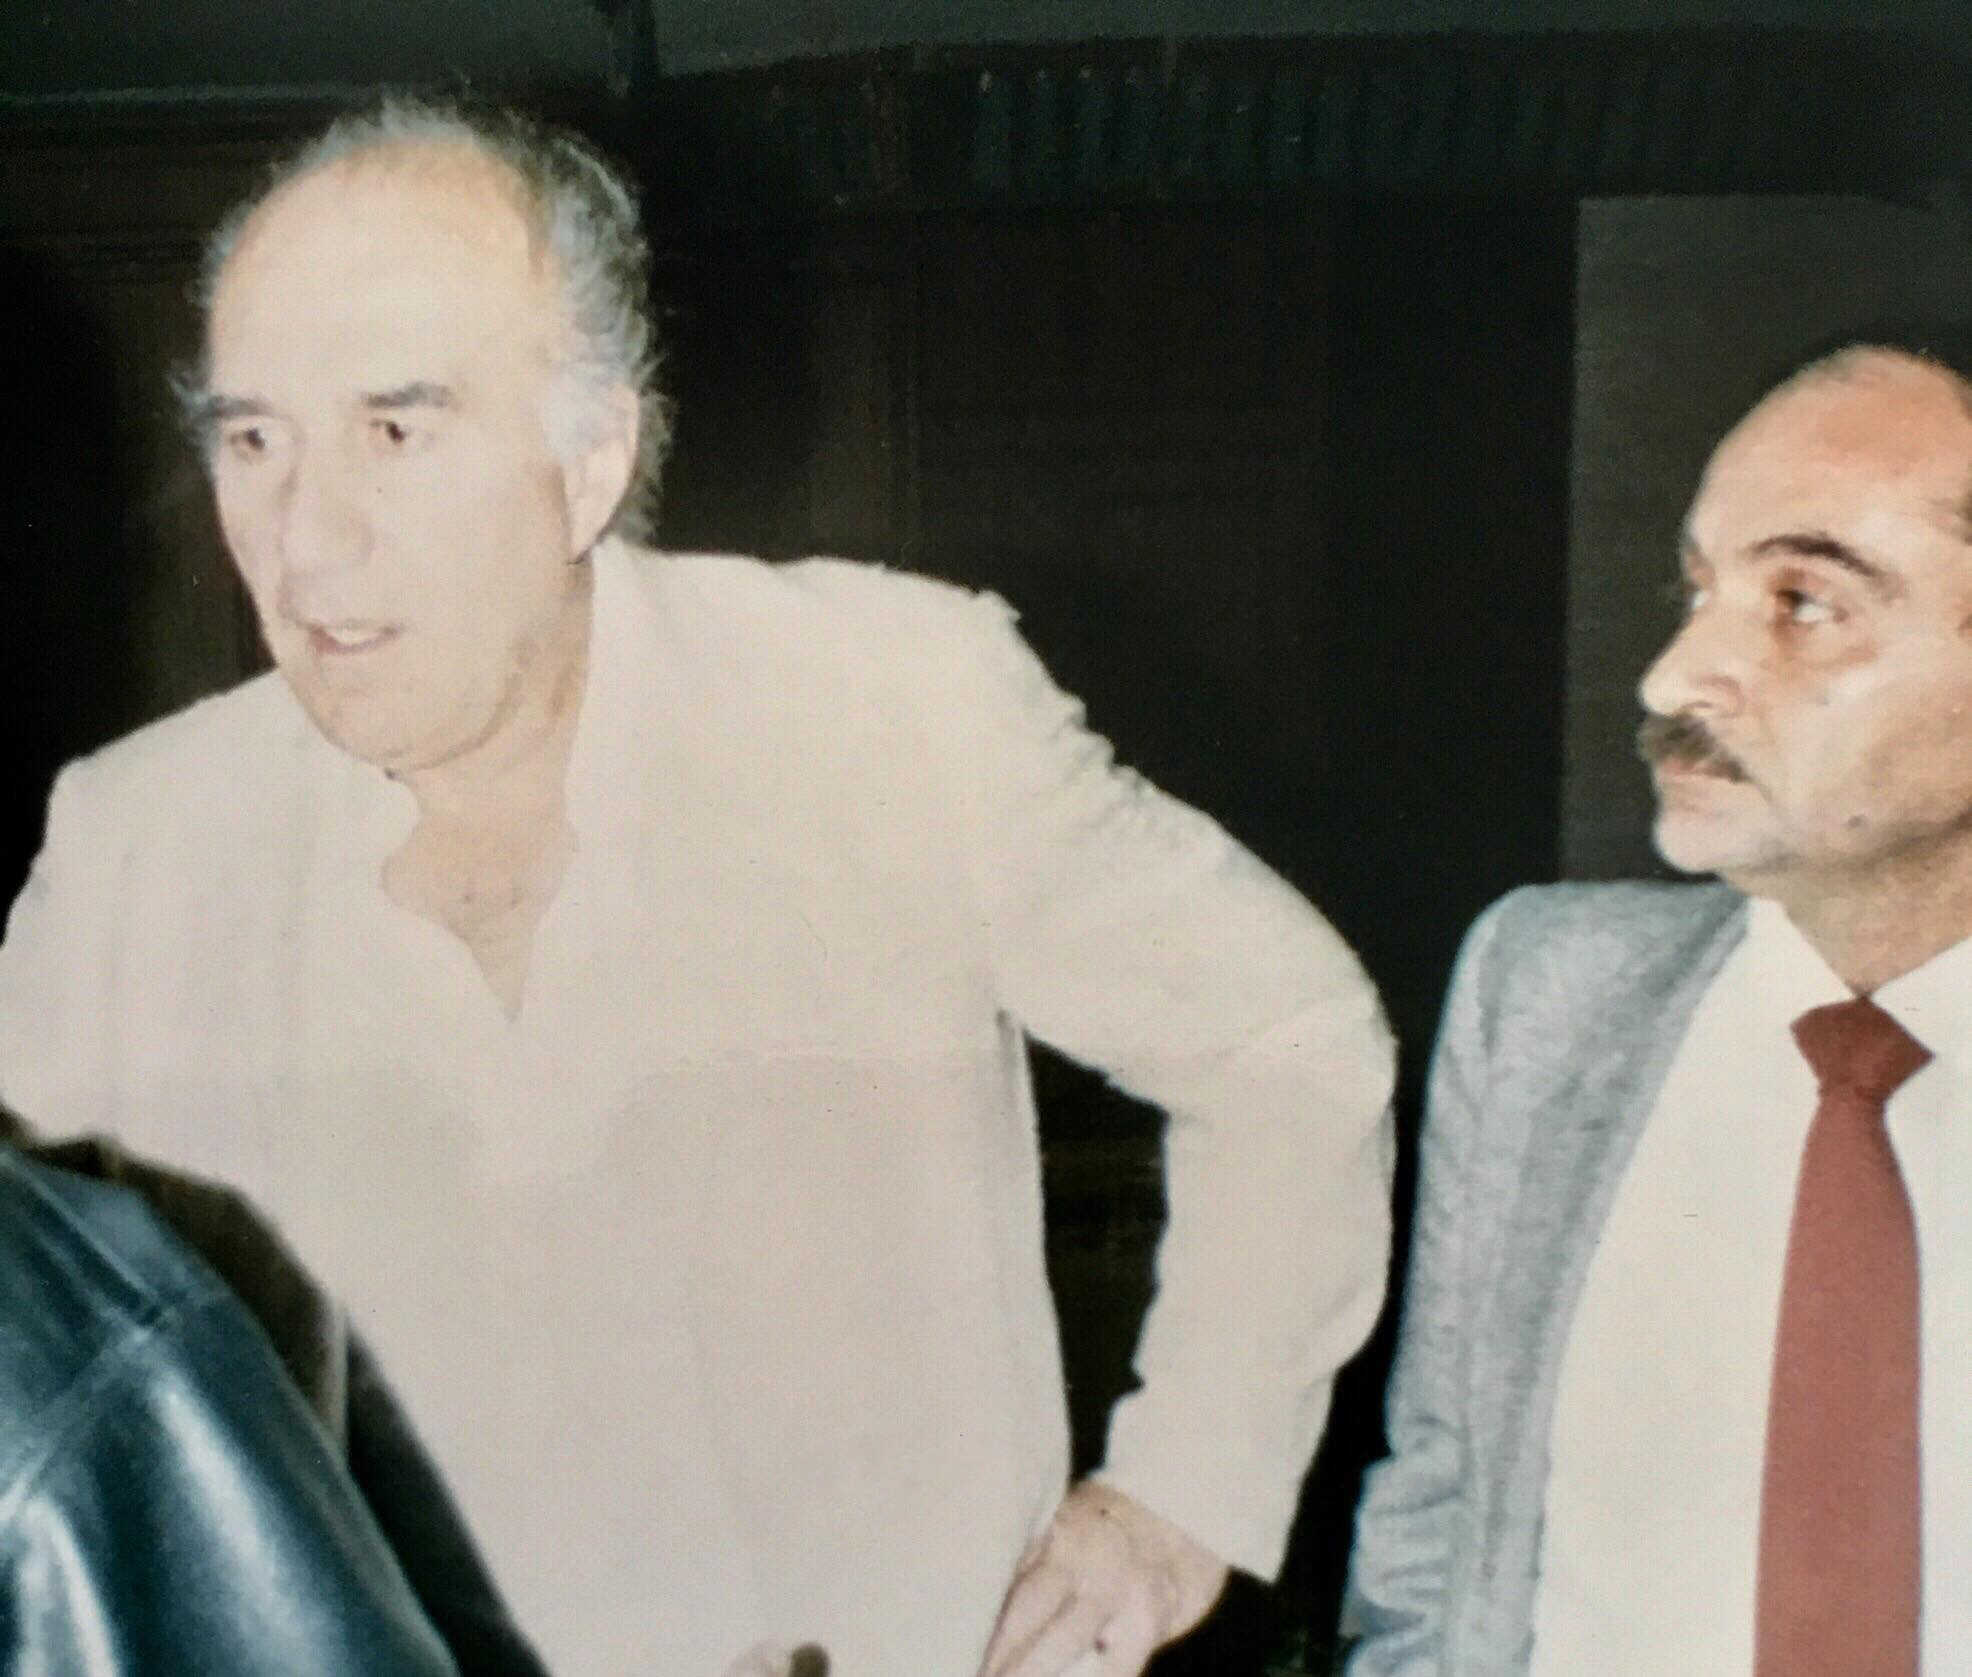 French movie star Michel Piccoli (L) stands next to Egyptian movie critic Youssef Cherif   Rizkallah at a press conference in Cairo, Egypt, Nov. 1987. (Photo: Diaa Bekheet)